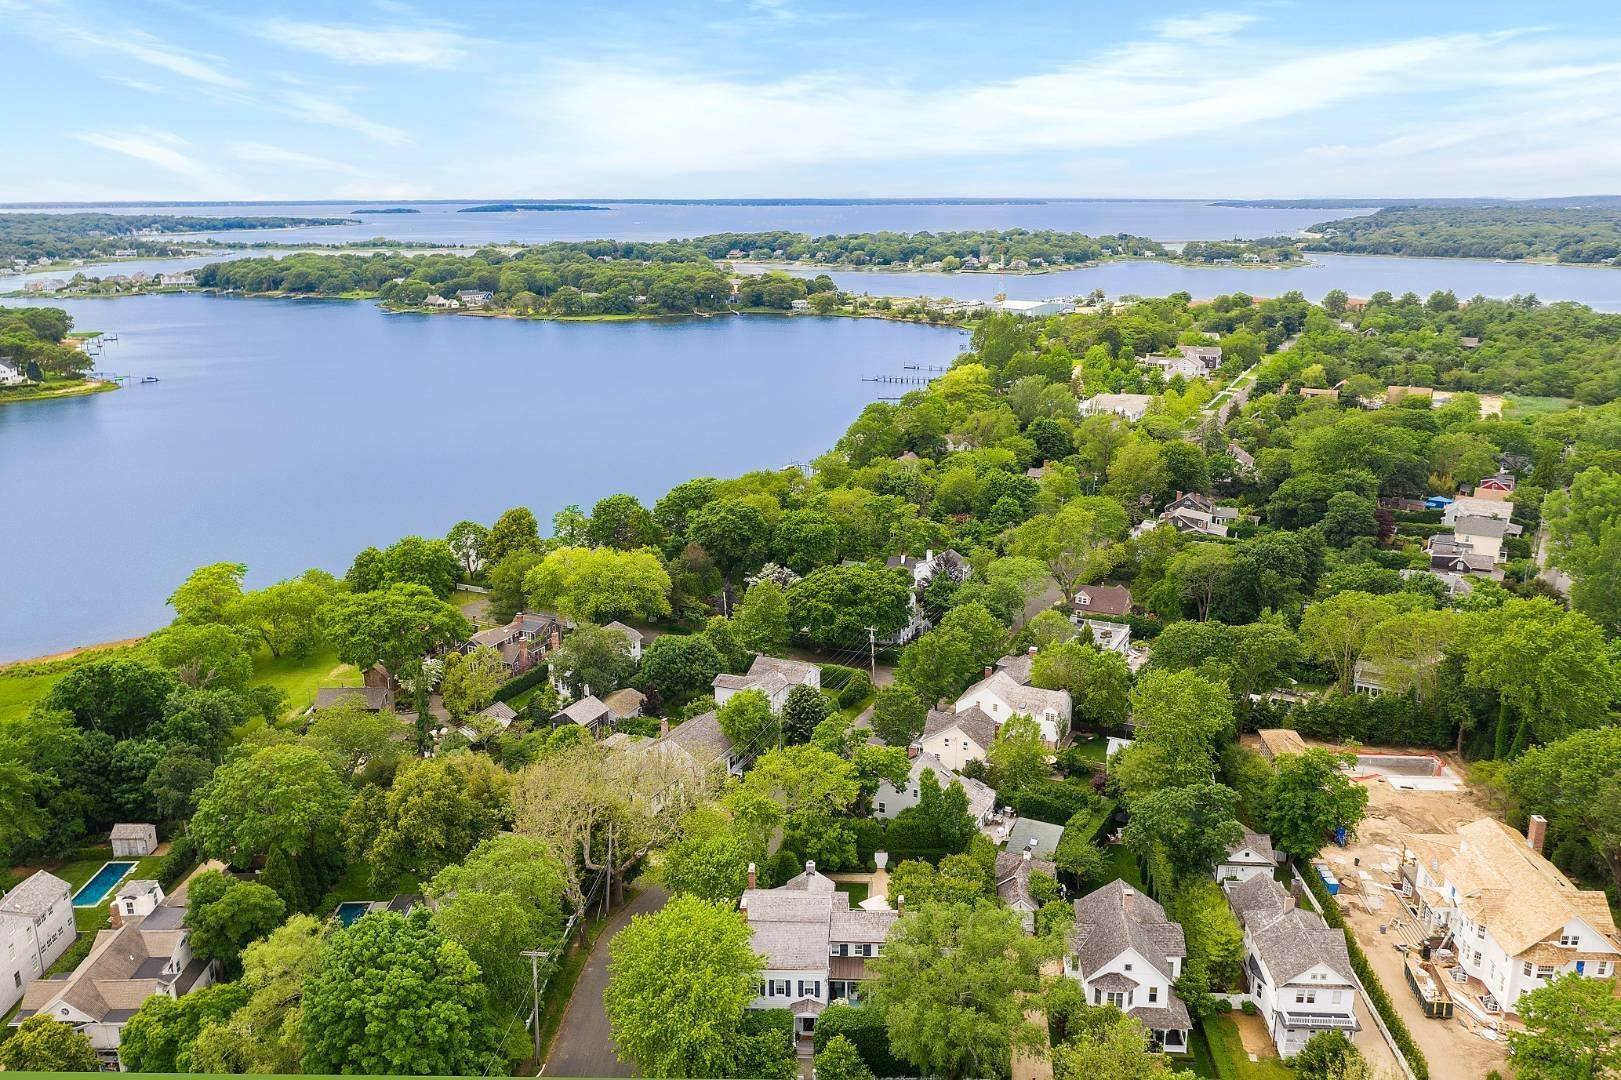 Single Family Home for Sale at Prime Sag Harbor Village Opportunity 2 Glover St., Sag Harbor, NY 11963